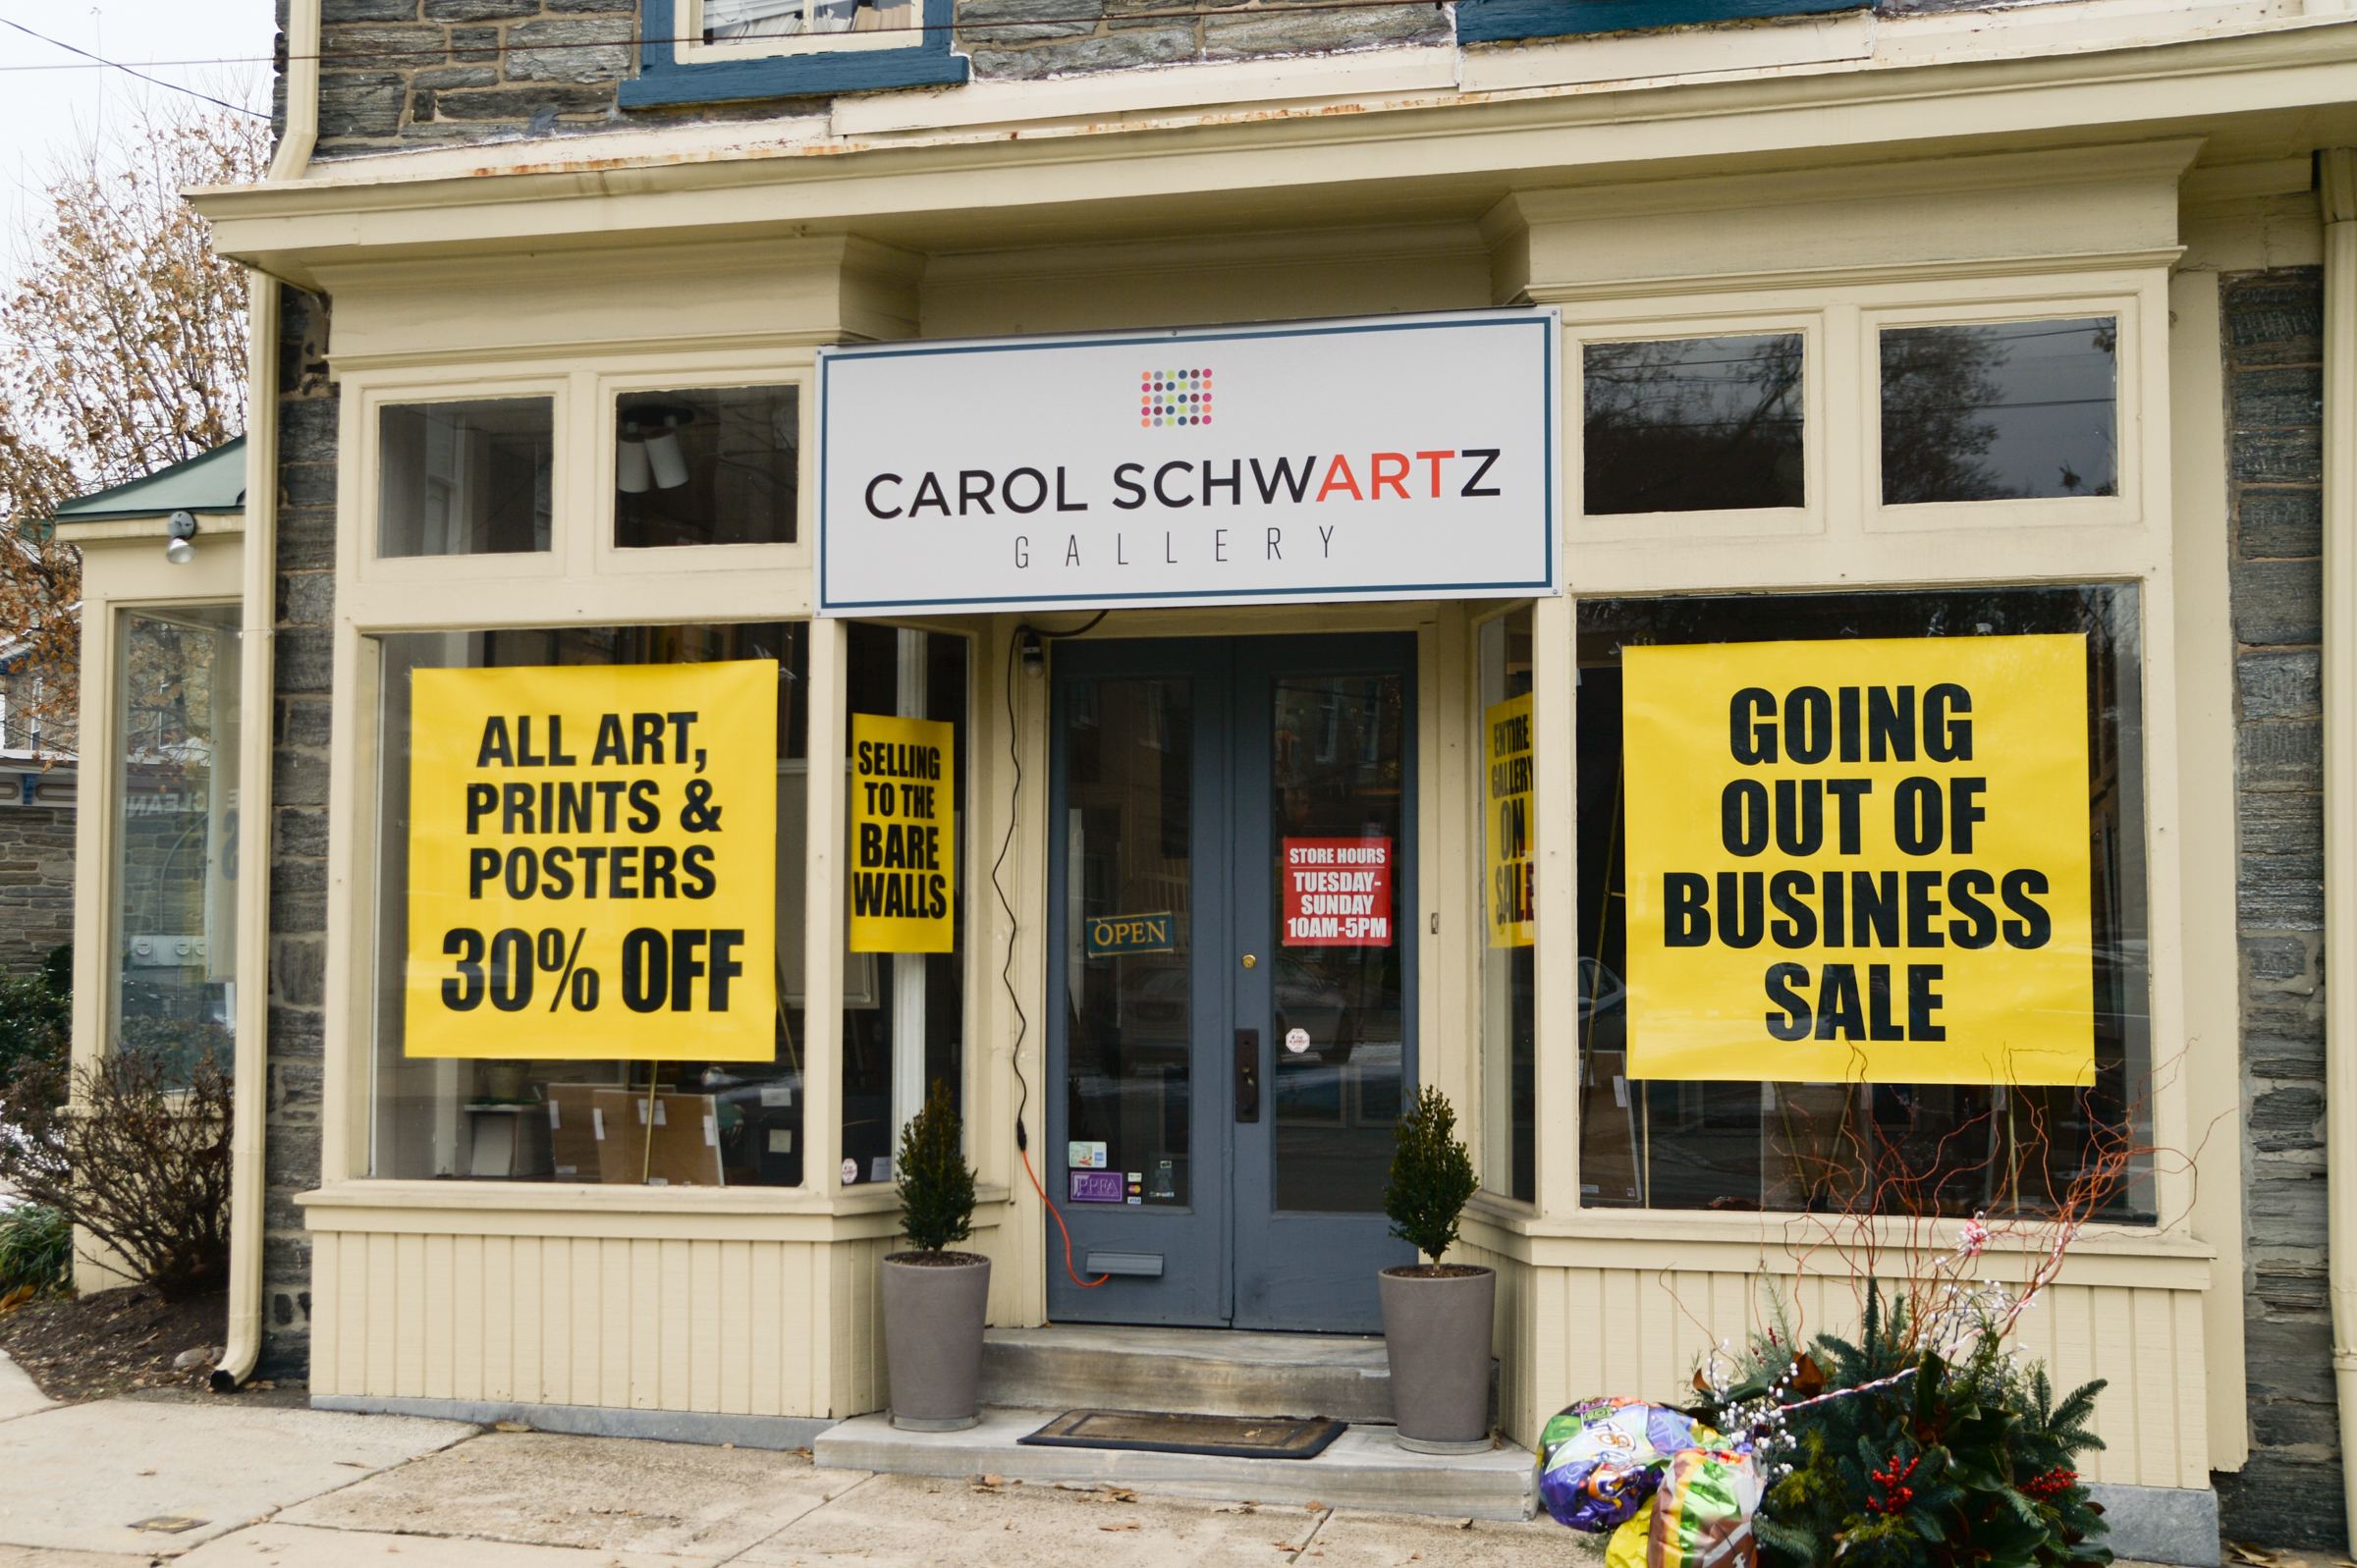 After 27 years on its Chestnut Hill corner, the Carol Schwartz Gallery in Chestnut Hill is going out of business. (GENEVA HEFFERNAN / Staff Photographer)